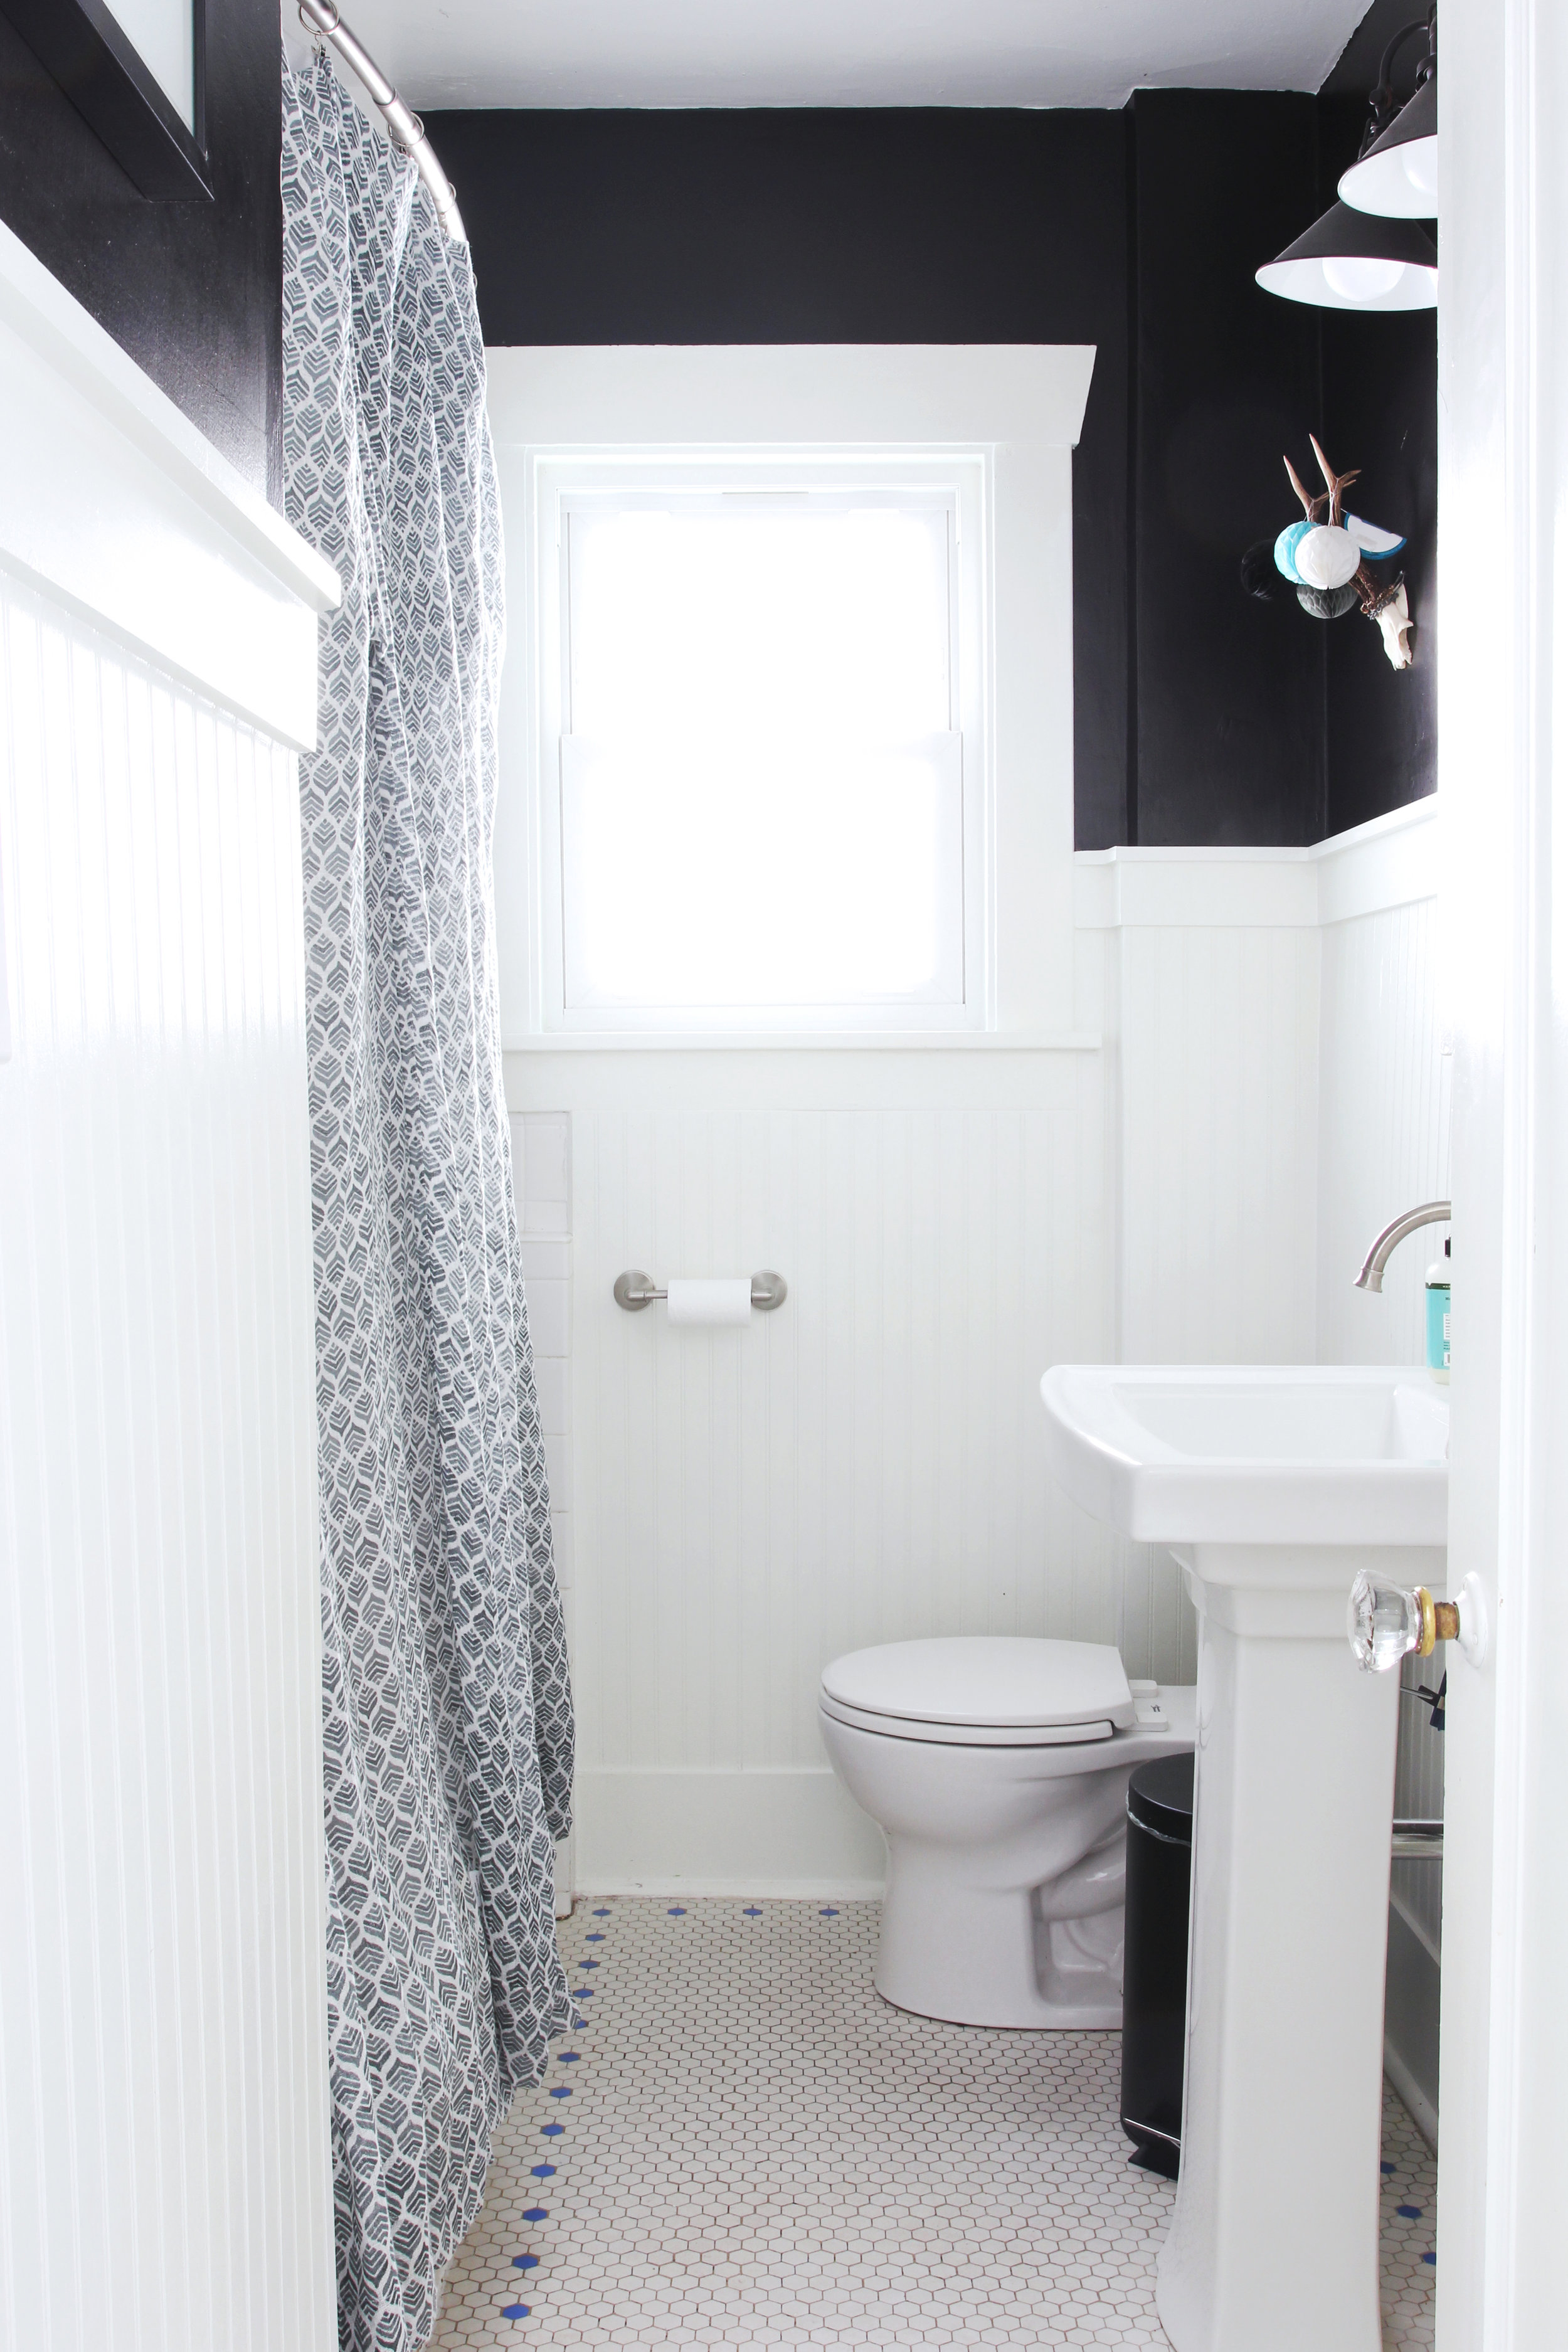 A Bathroom Remodel For Under $1000 at the Dexter House ...